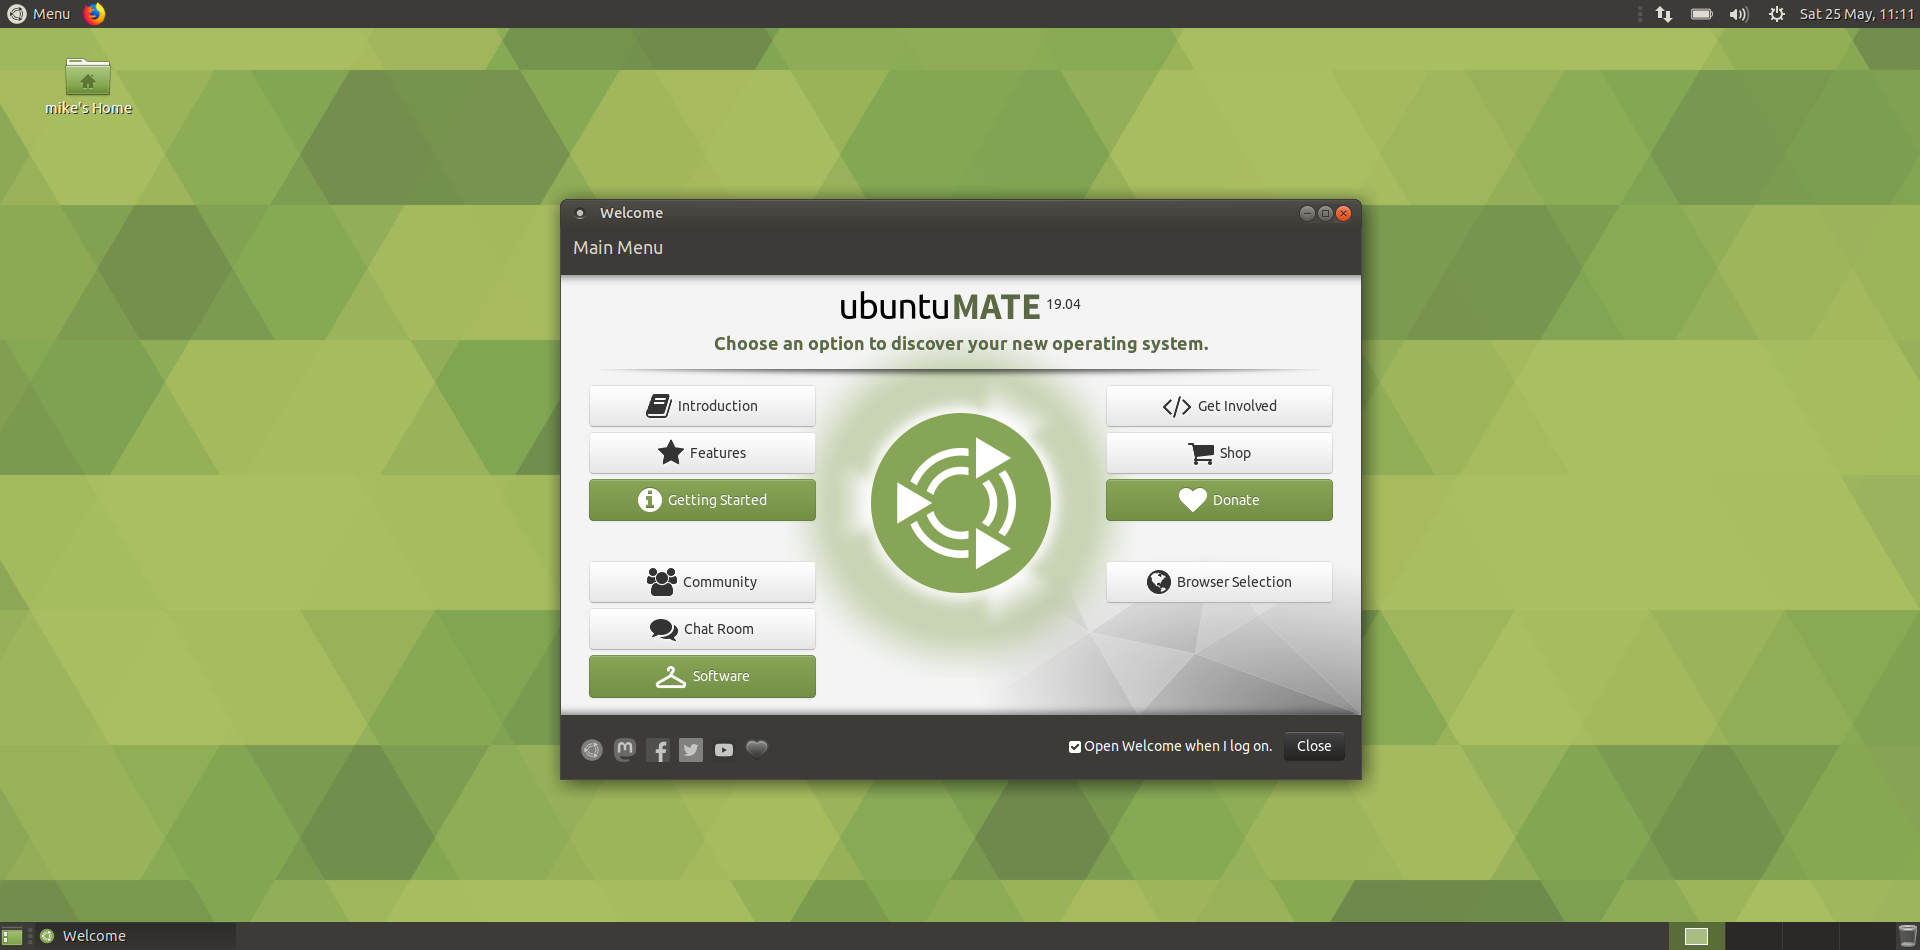 ubuntu mate - the welcome screen